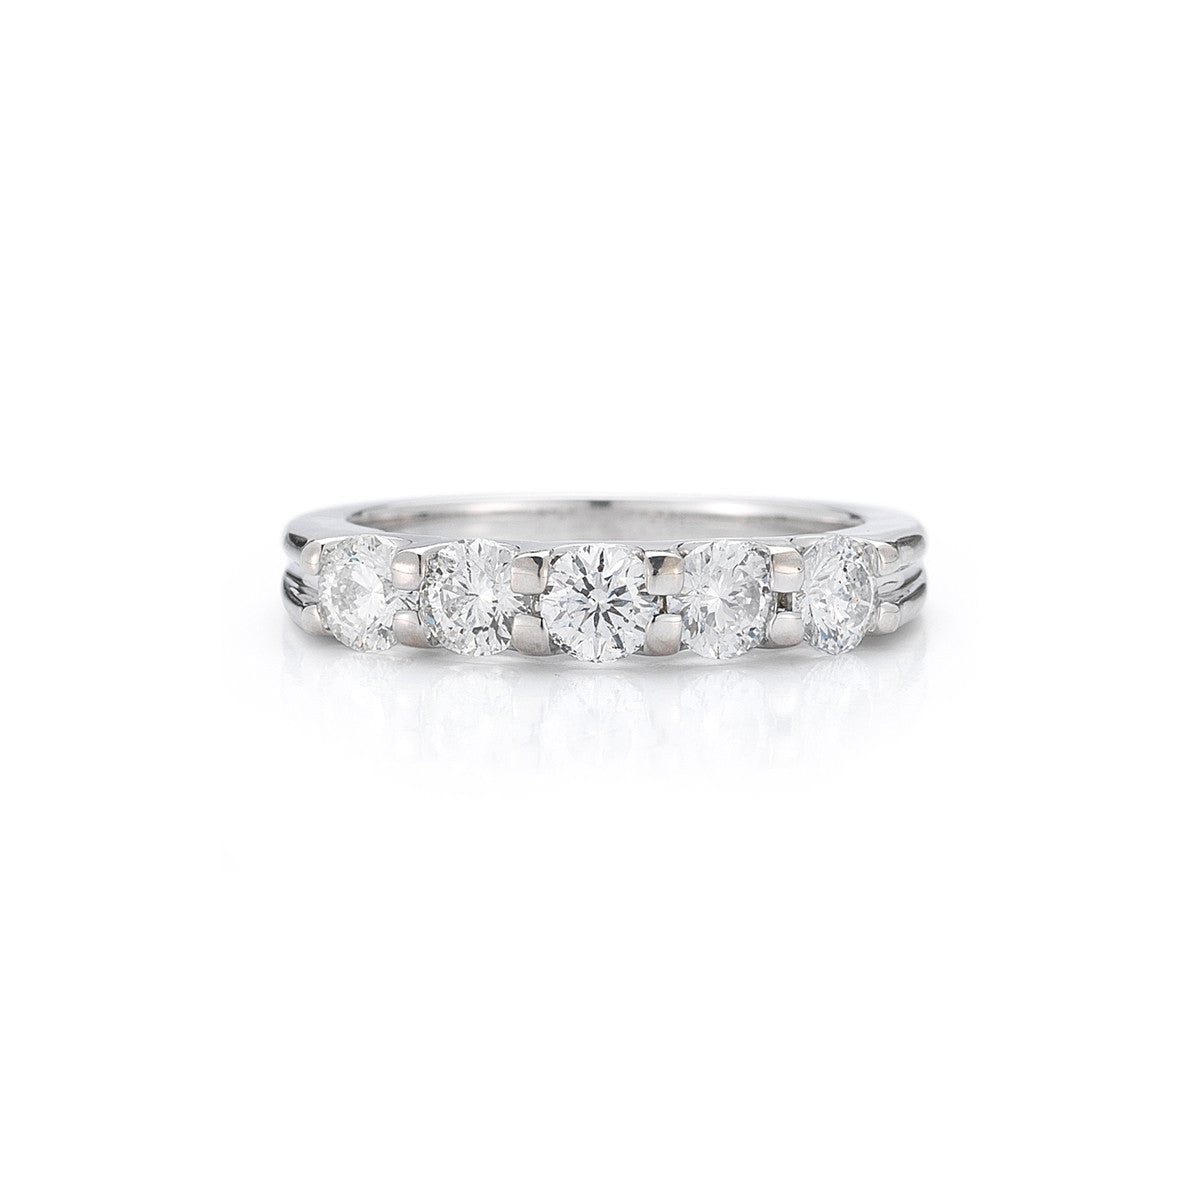 round jewelry carat ring in ben jeweler bridge platinum diamond baguette